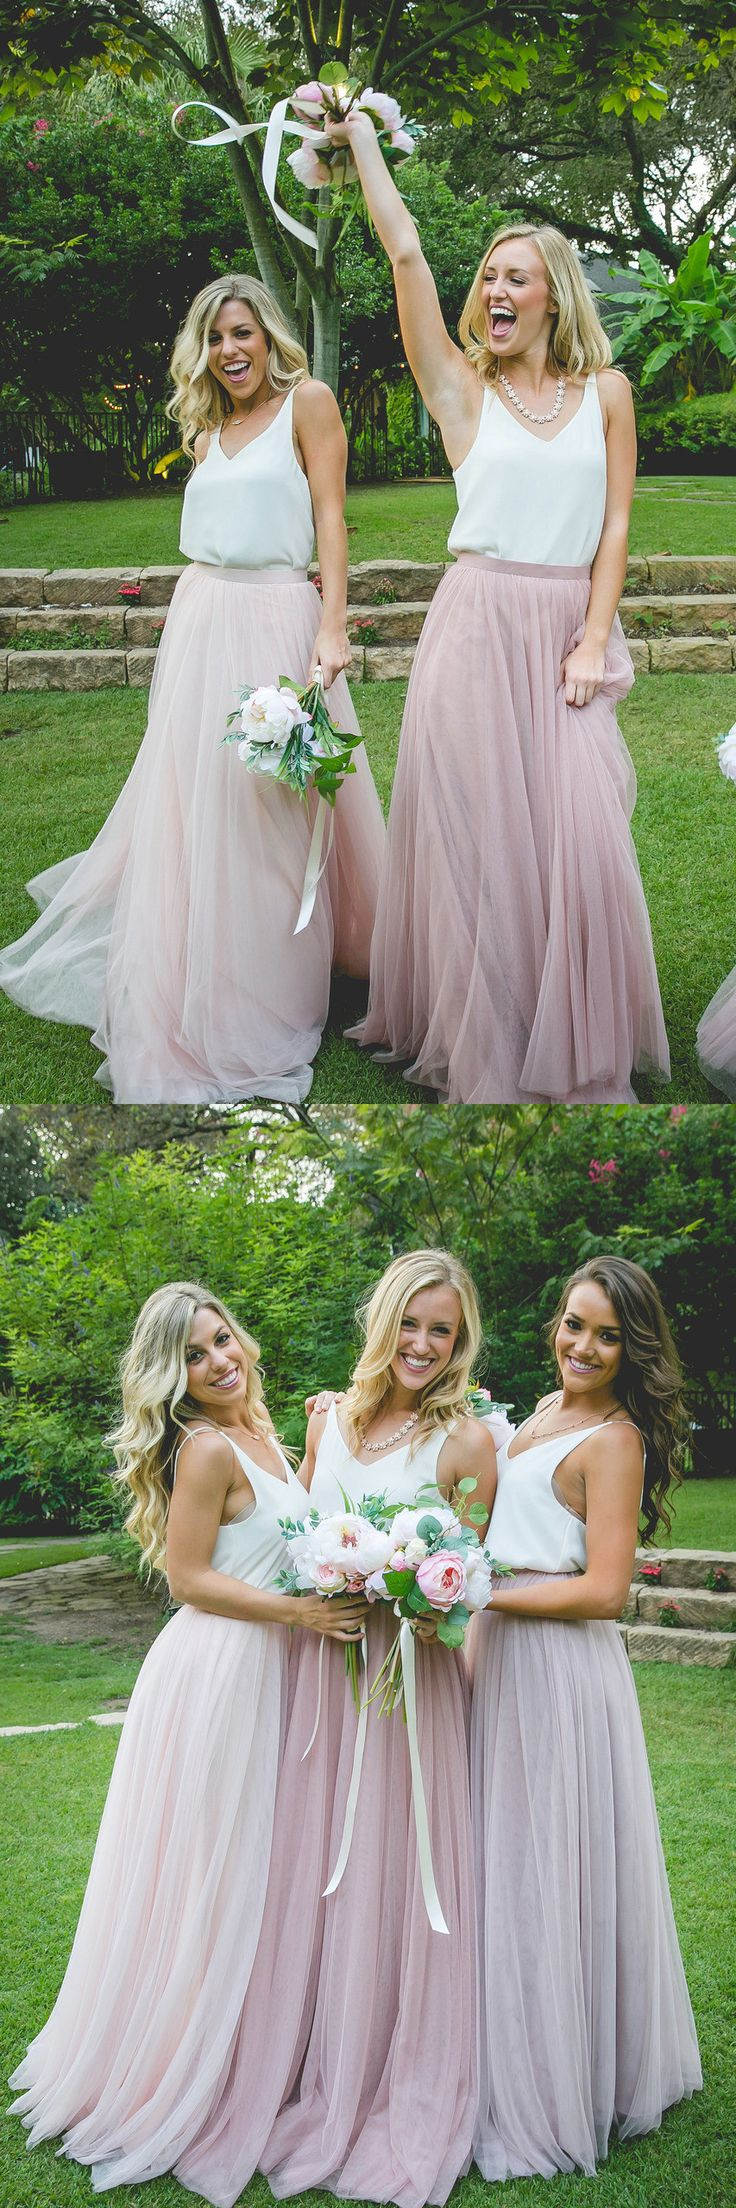 2017 long bridesmaid dress, pink long tulle bridesmaid dress, two piece bridesmaid dress, tutu skirt.....MICH... looks like it may come in a grey/silver?